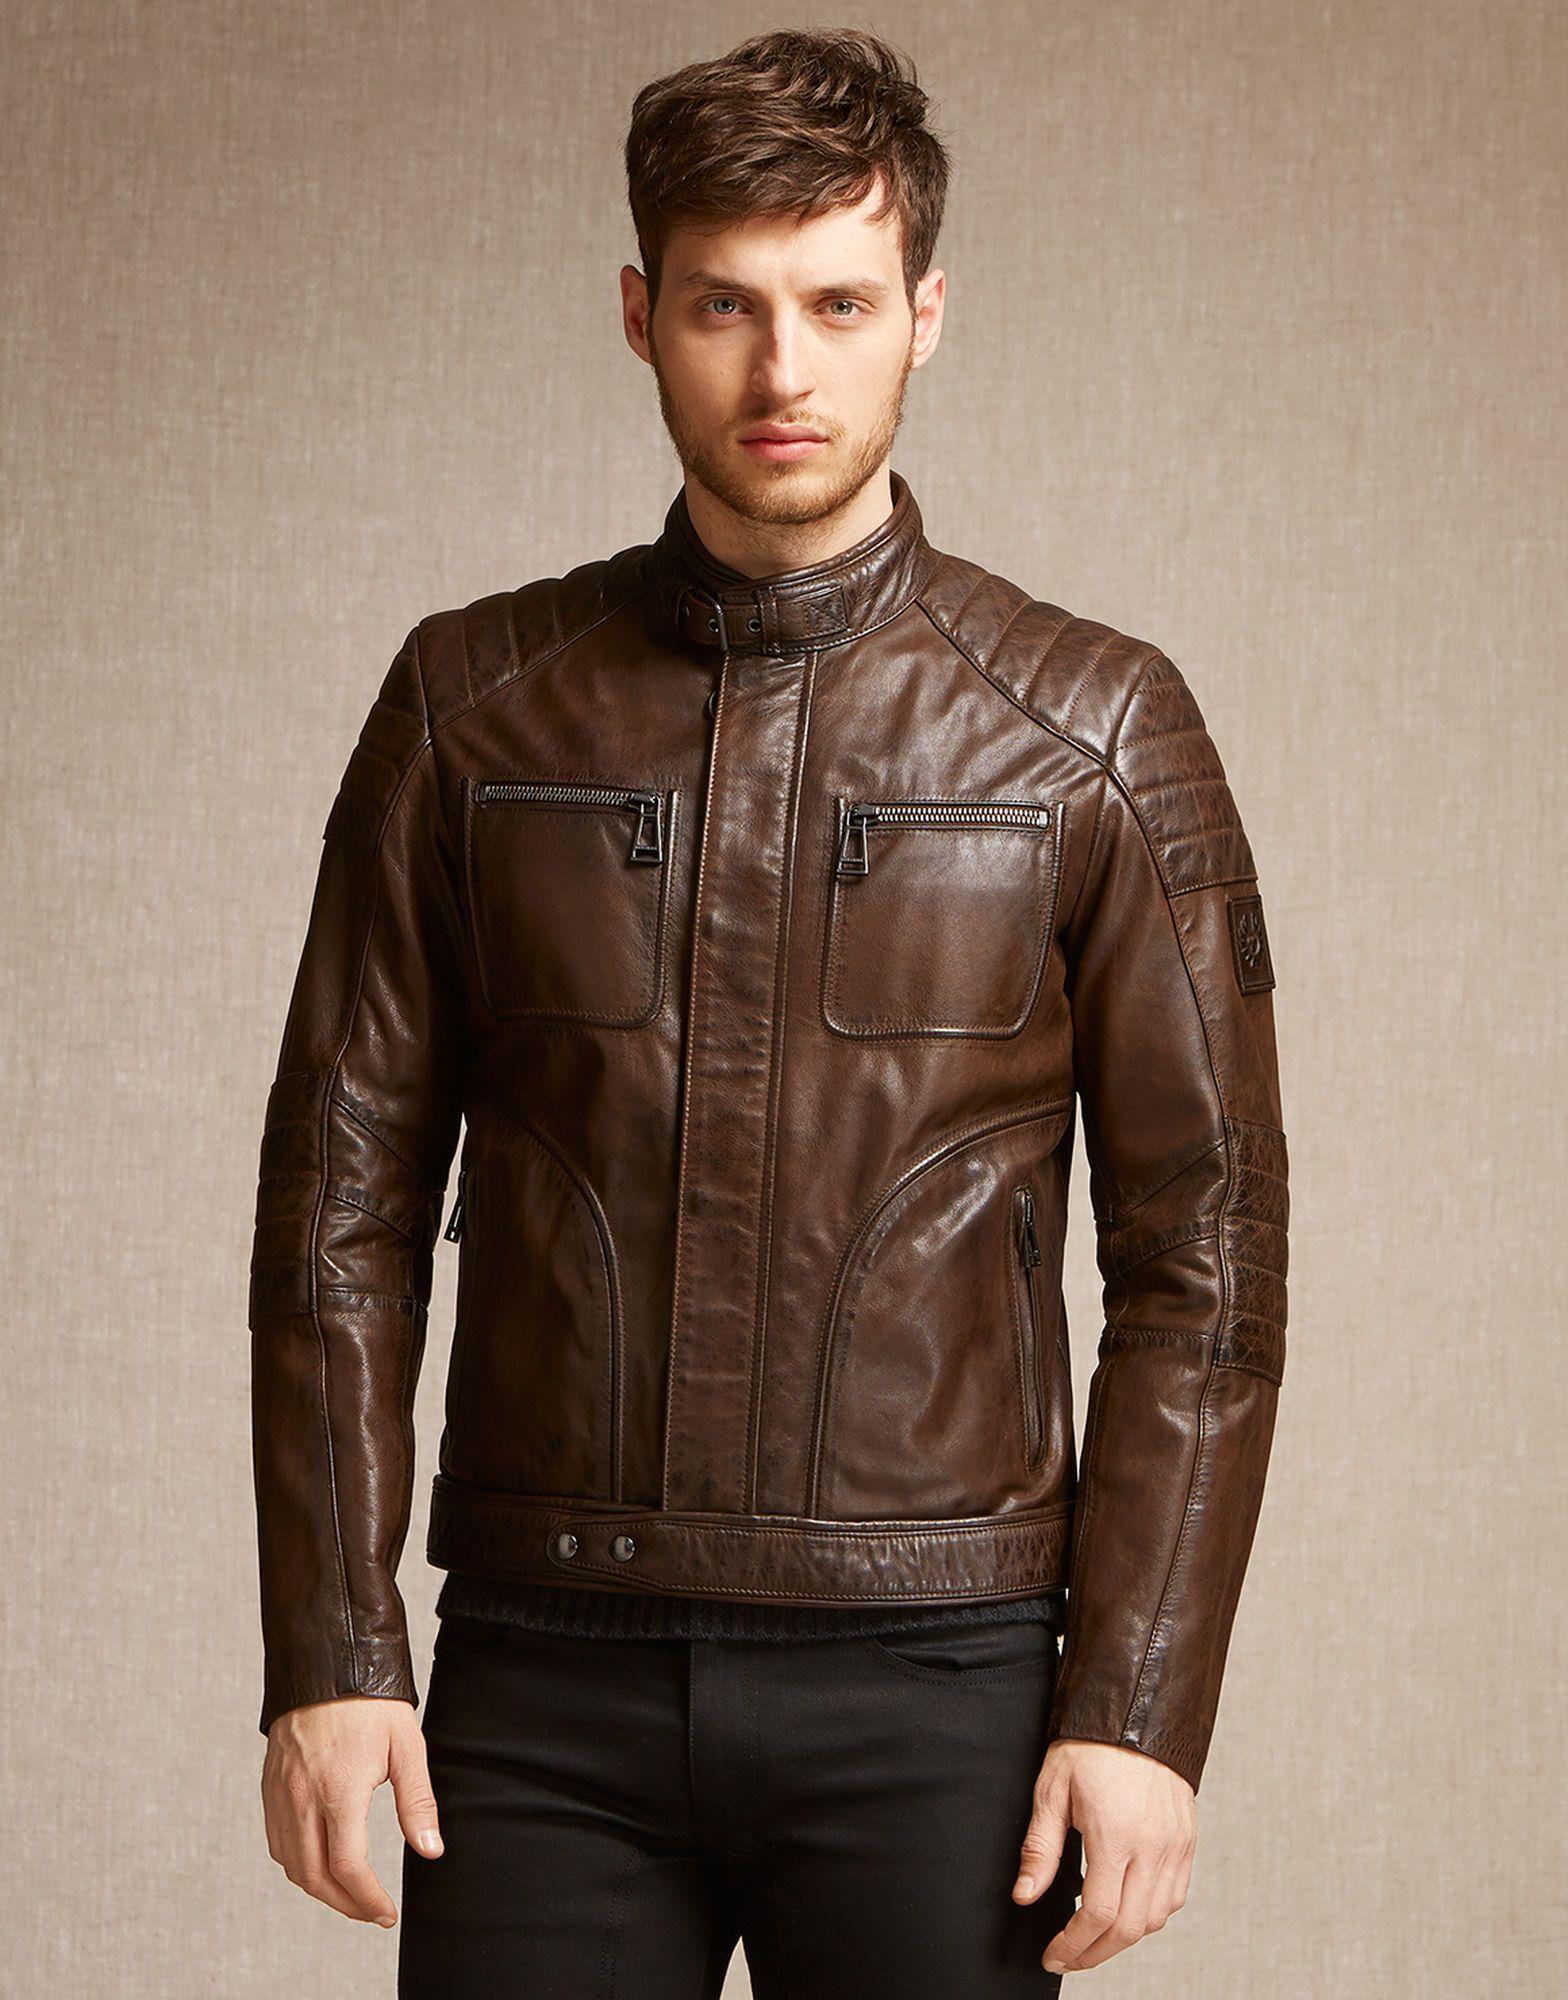 Belstaff Weybridge Leather Jacket Black/Brown